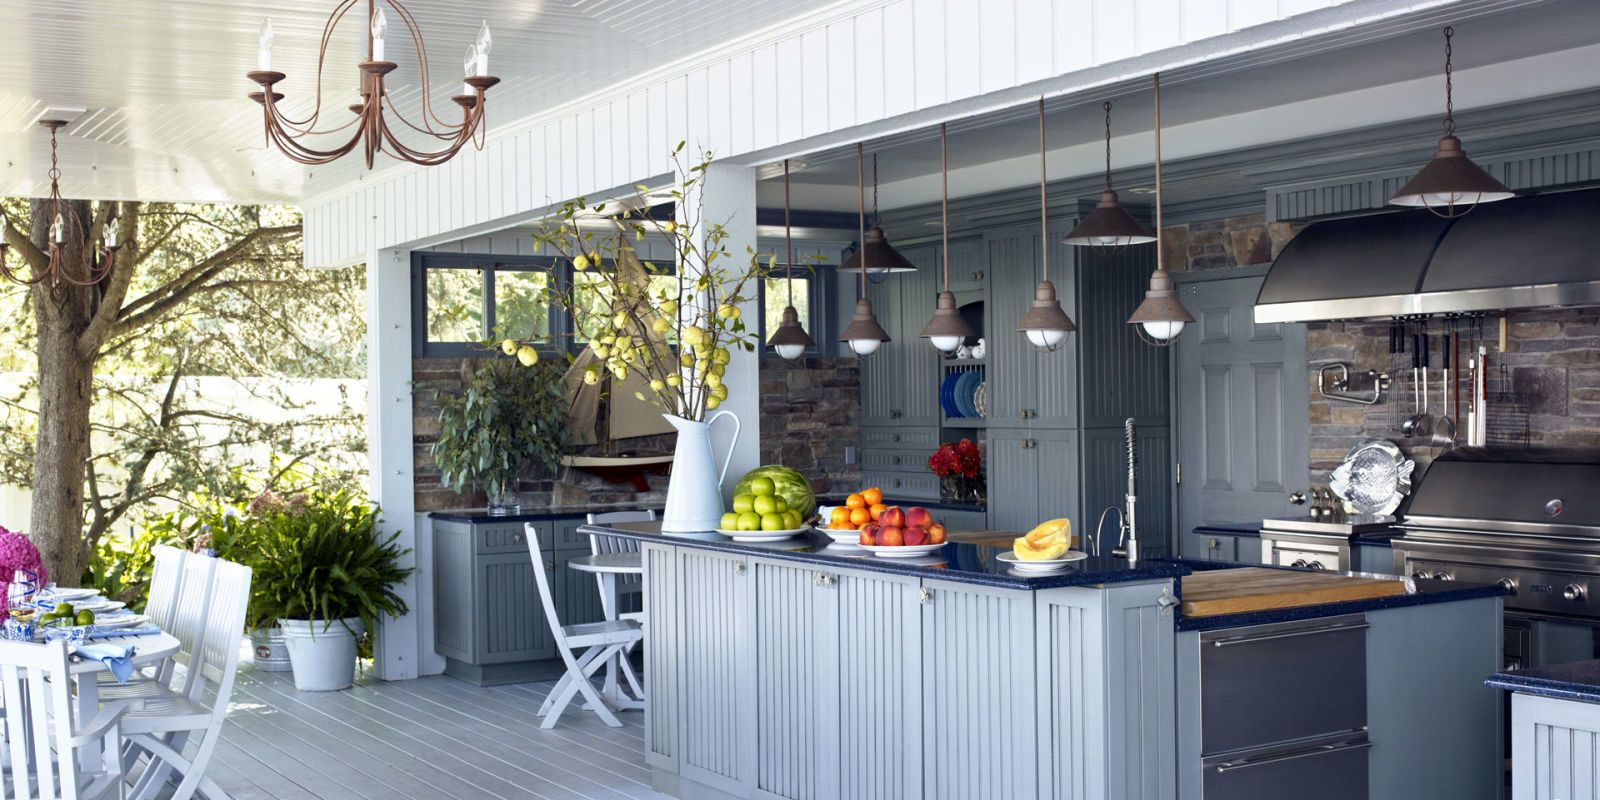 Attirant Blue Outdoor Kitchen